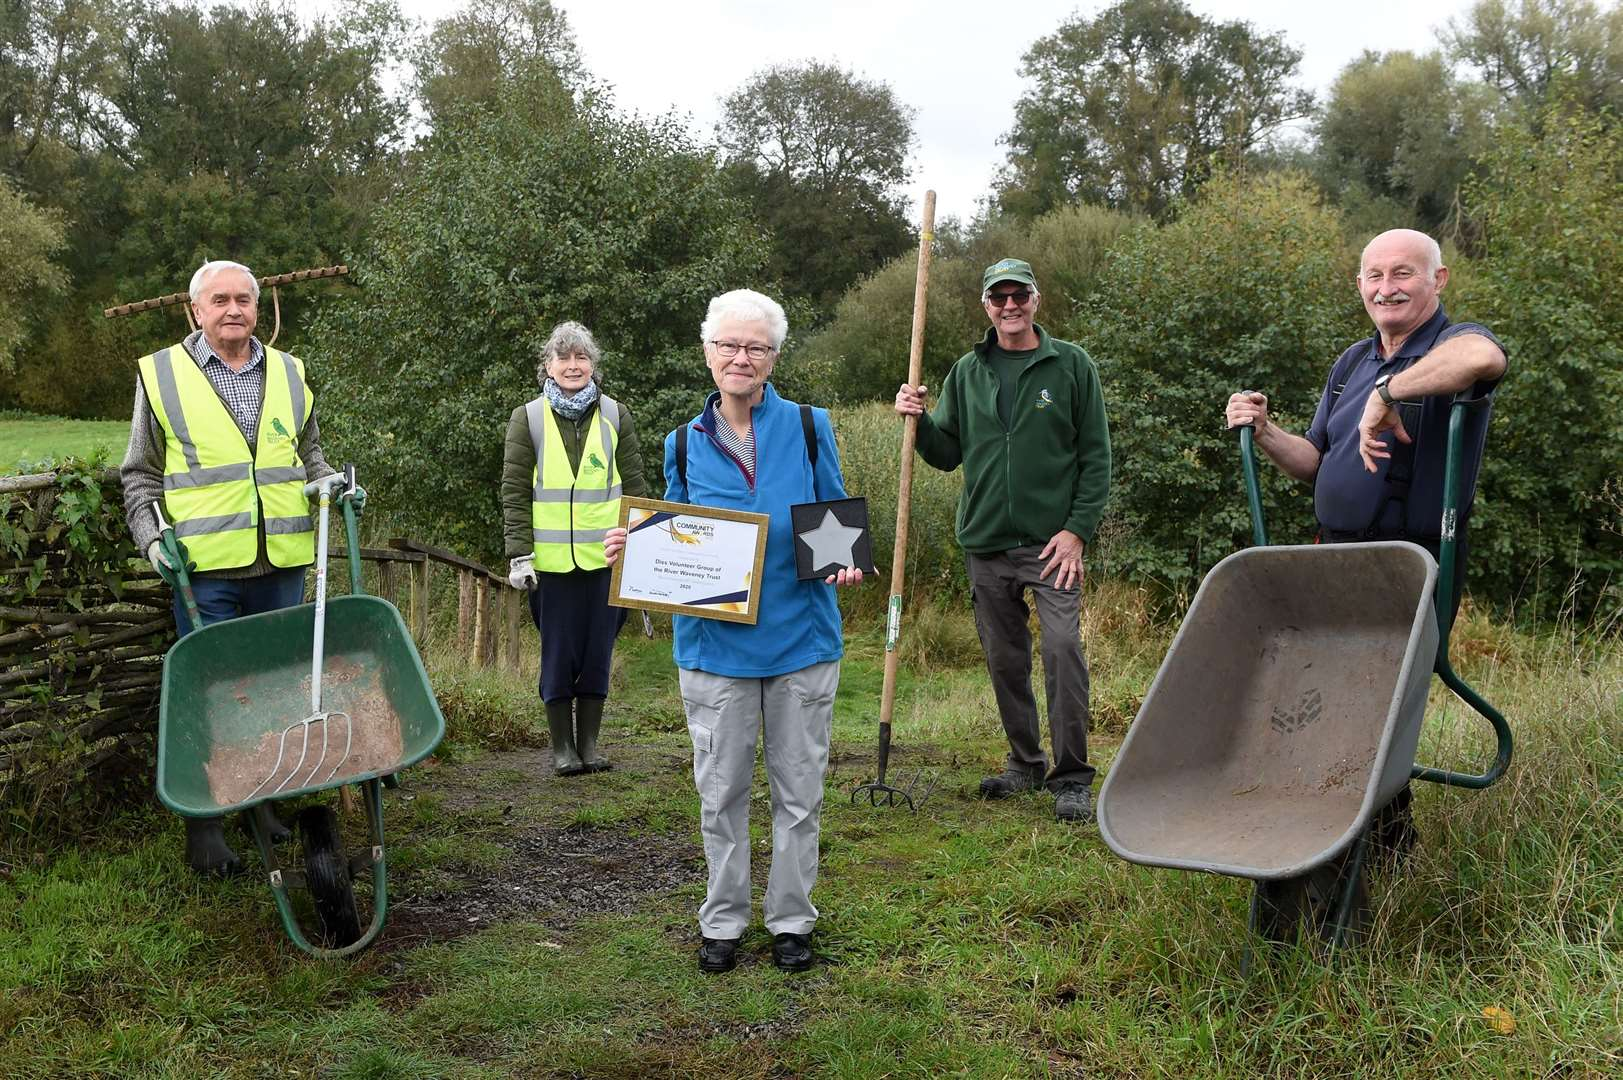 The group have been hailed as Environmental Champions of 2020, after ensuring Frenze Beck Nature Reserve was well looked-after during the pandemic.